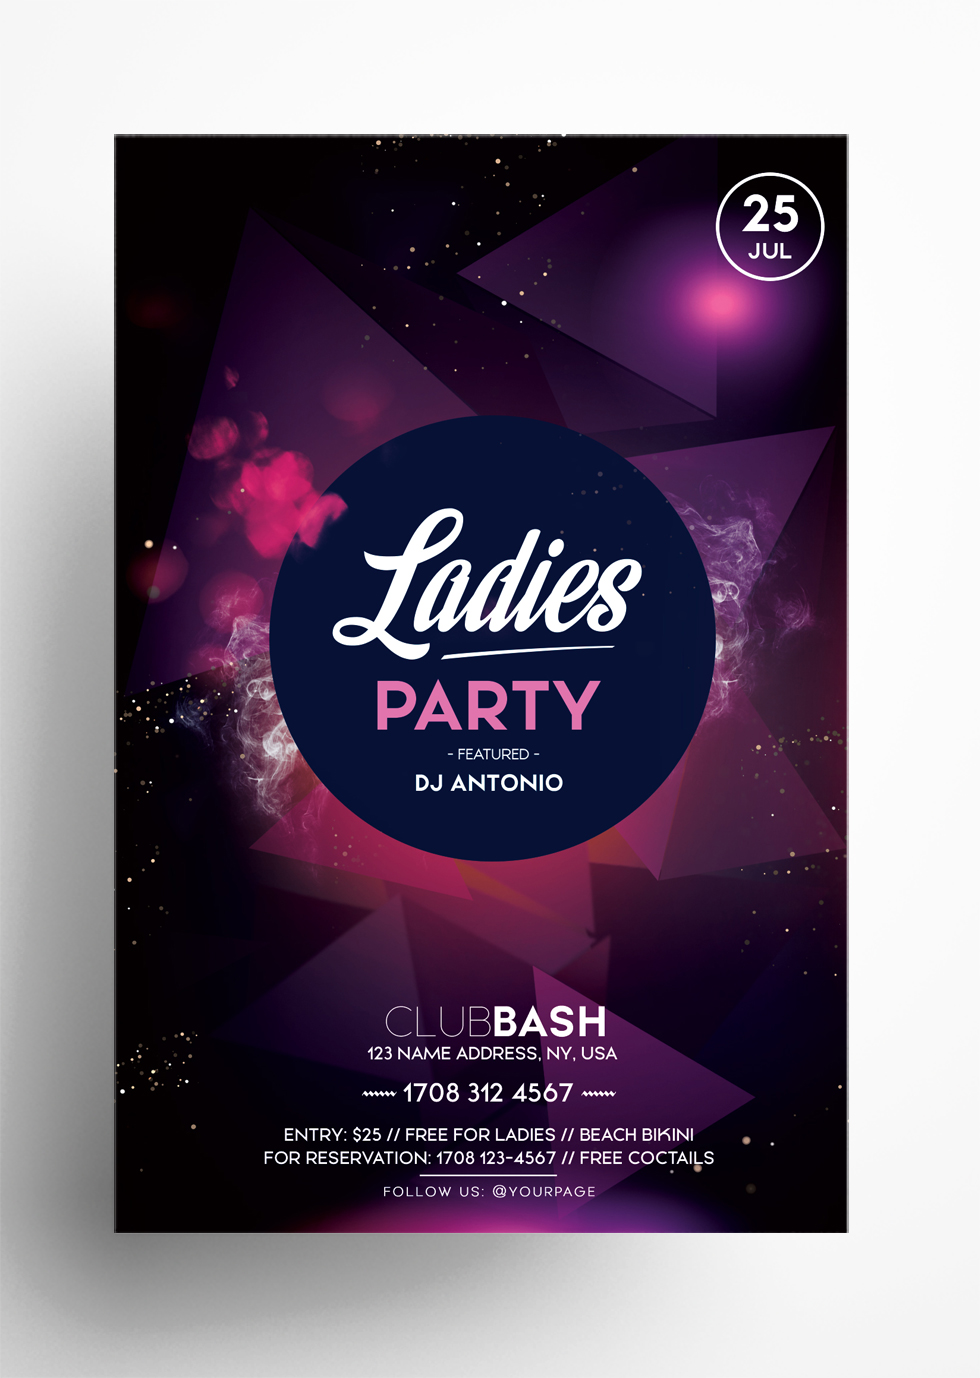 Ladies Party PSD Free Flyer Template